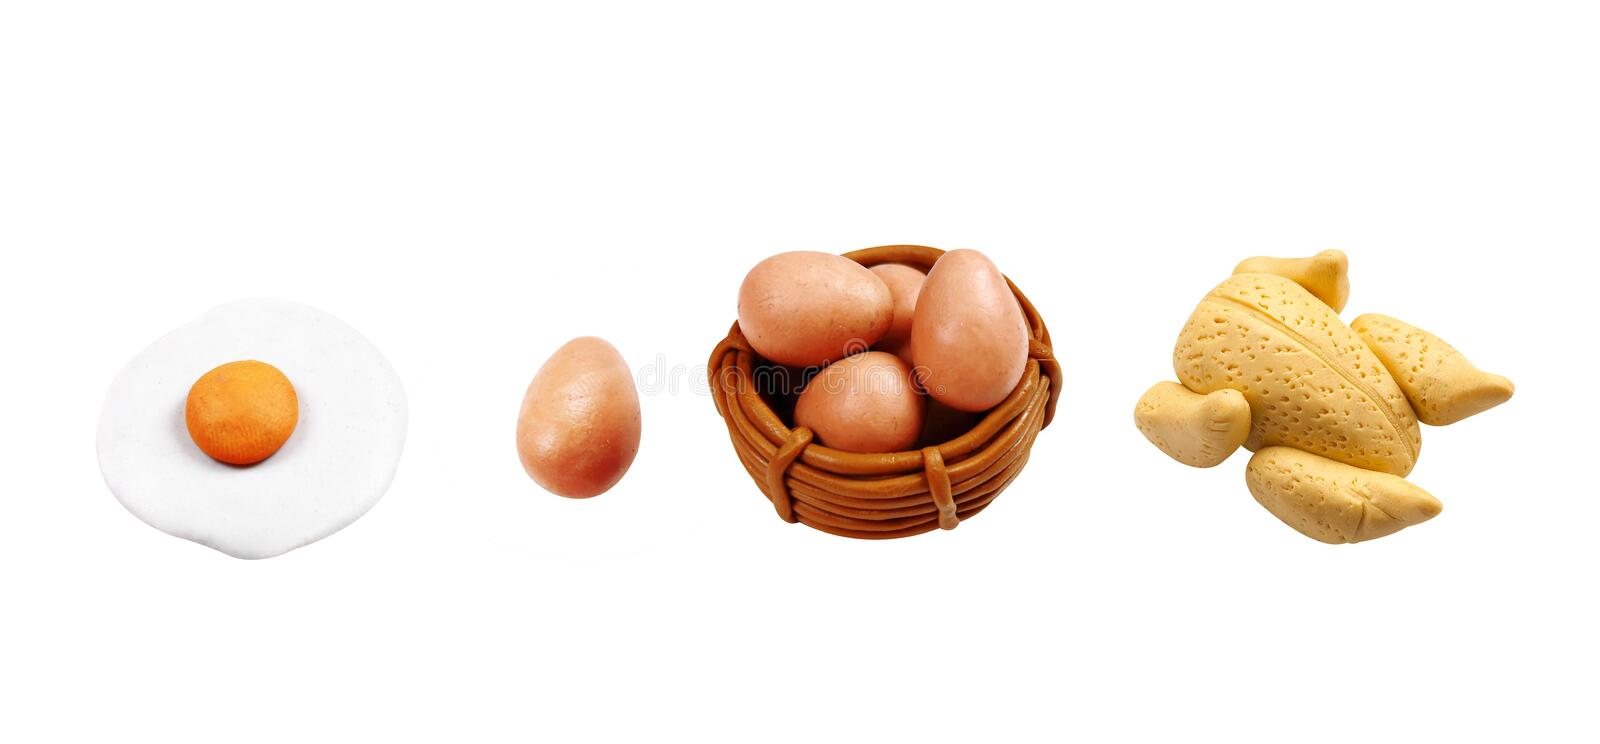 Miniature egg and chicken fried model from japanese clay stock photos